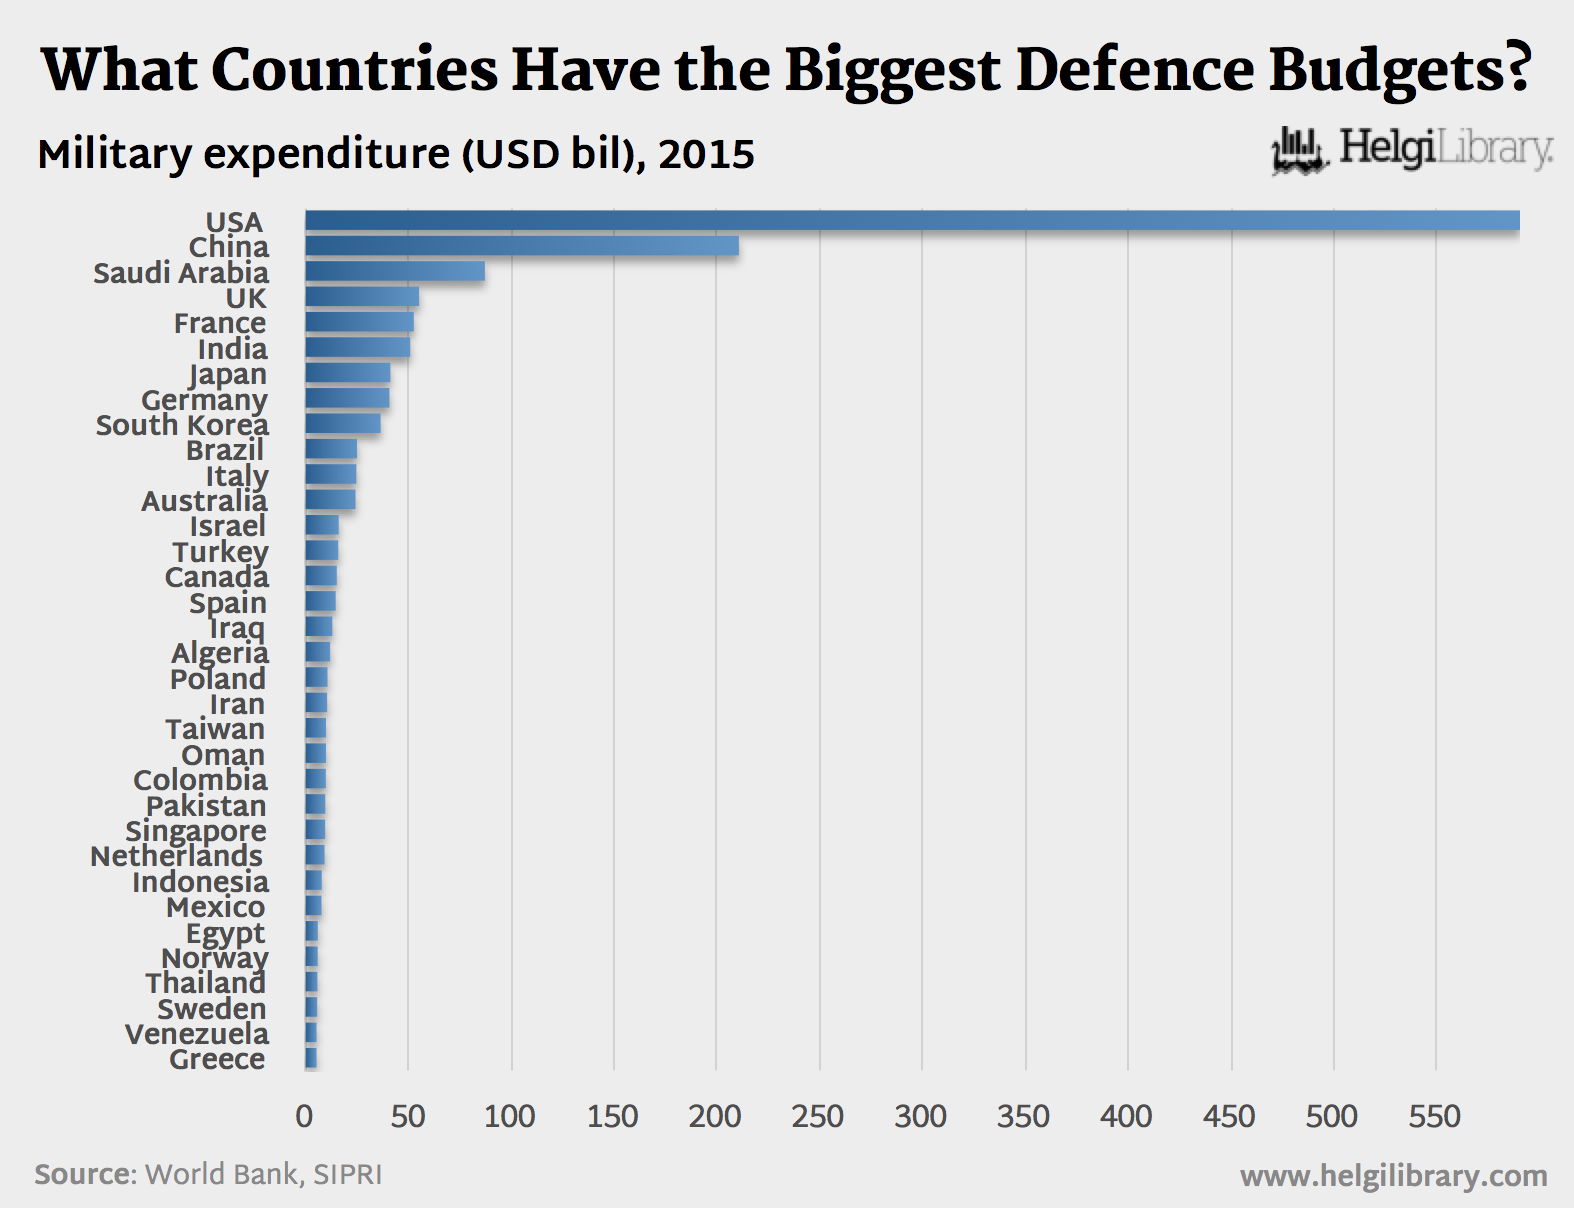 What Countries Had the Biggest Defence Budget in 2015?